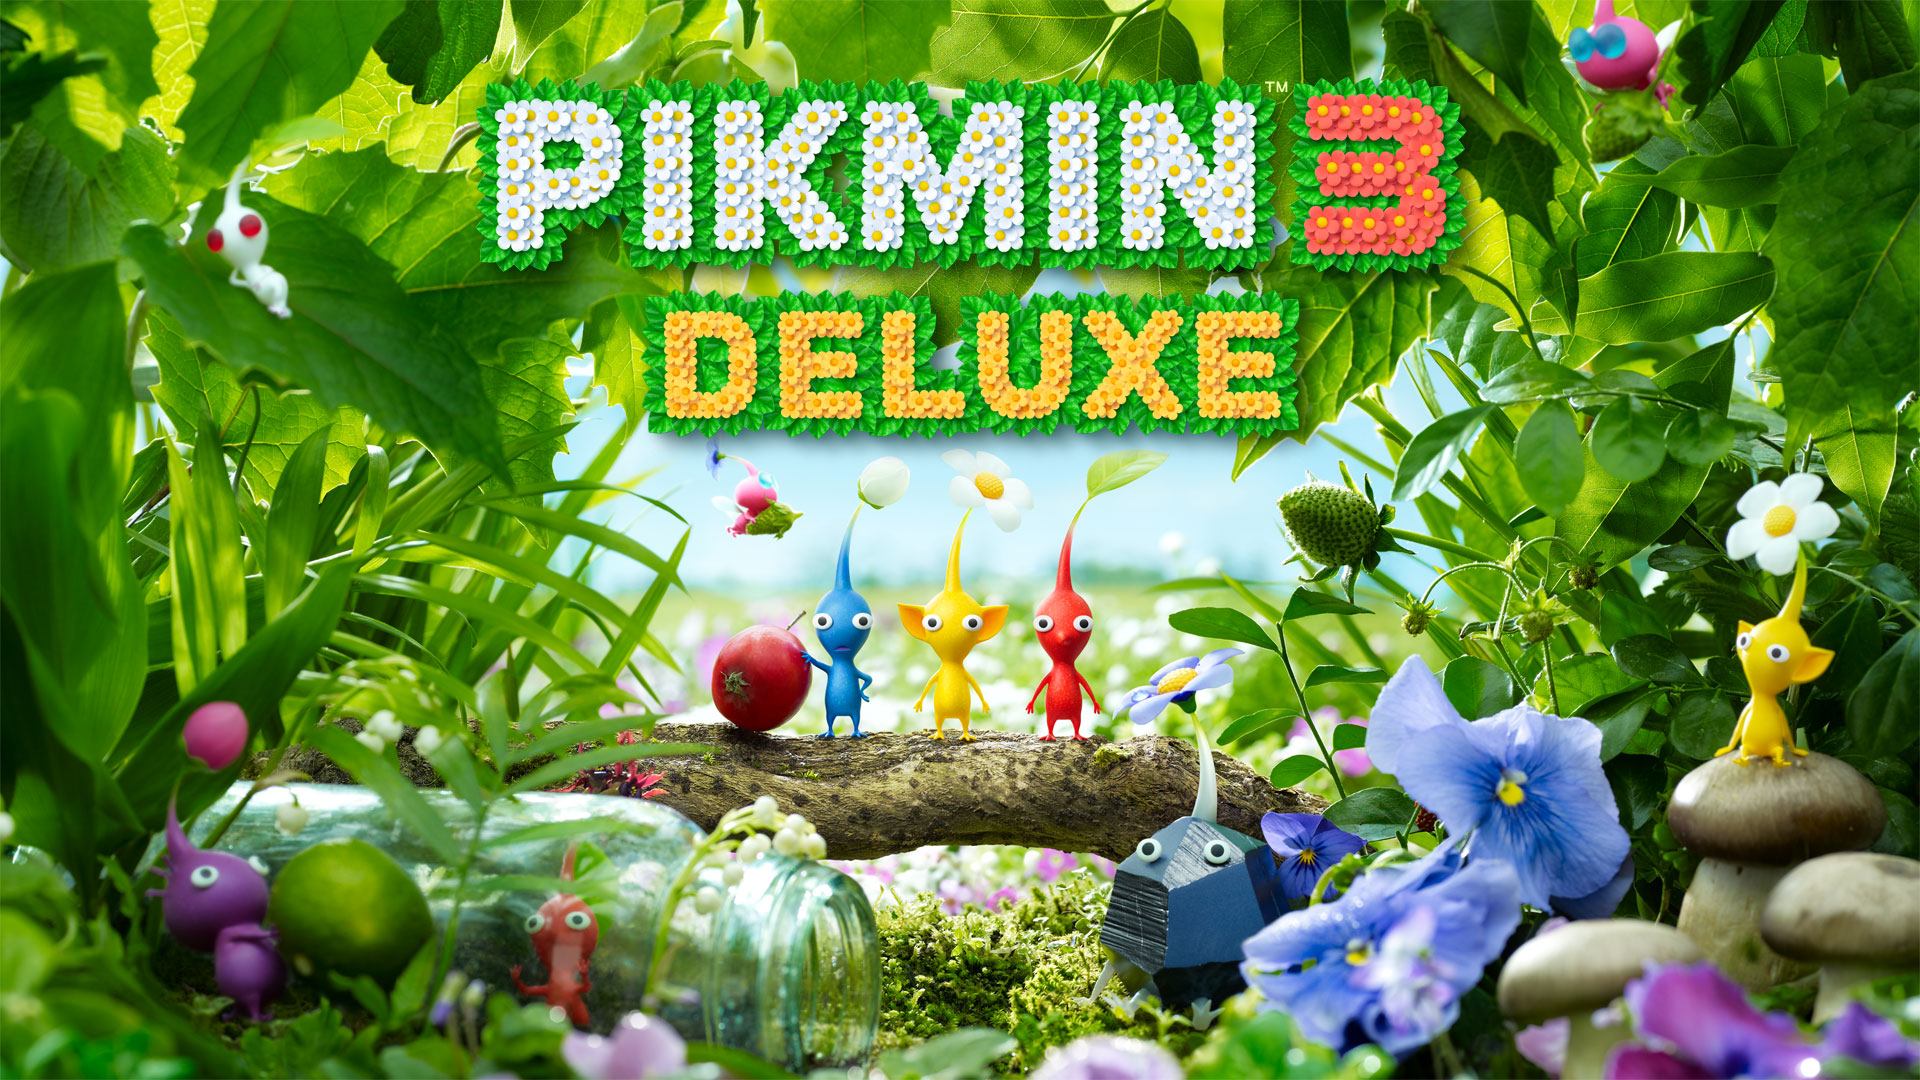 Pikmin 3 Deluxe Lands in September, Includes Past DLC & New Content